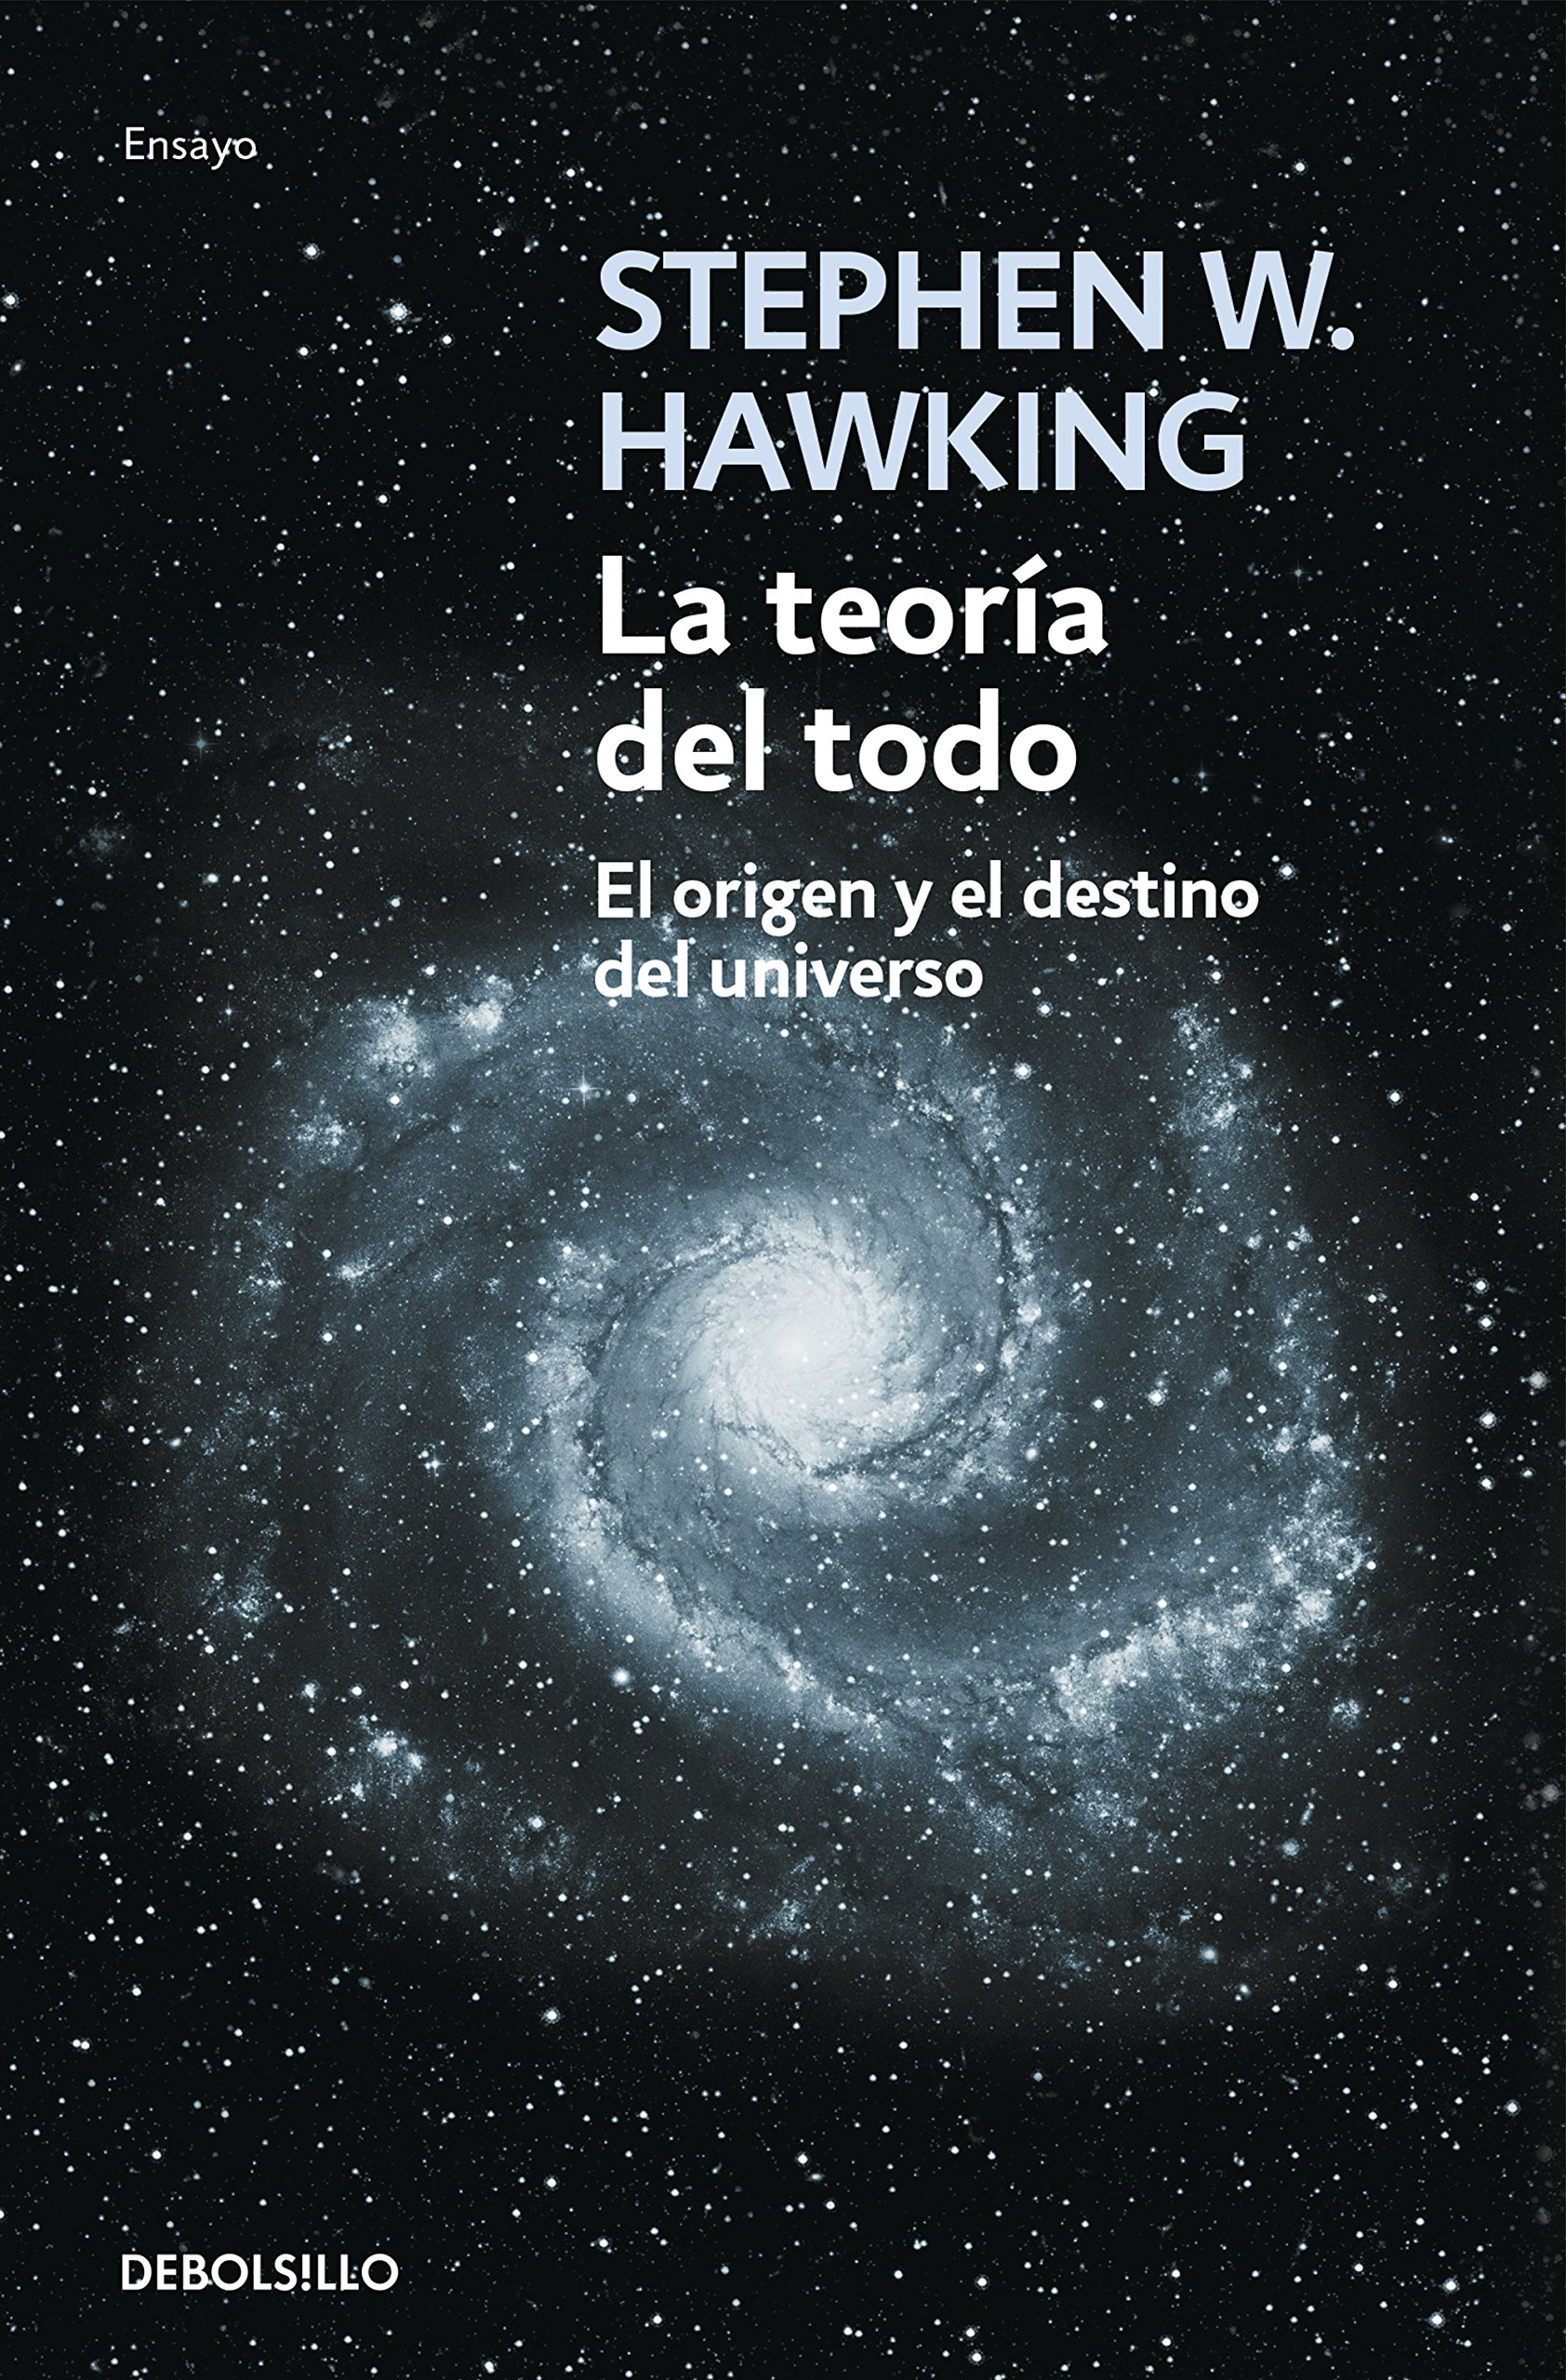 STEPHEN HAWKING TEORIA DEL TODO EPUB DOWNLOAD